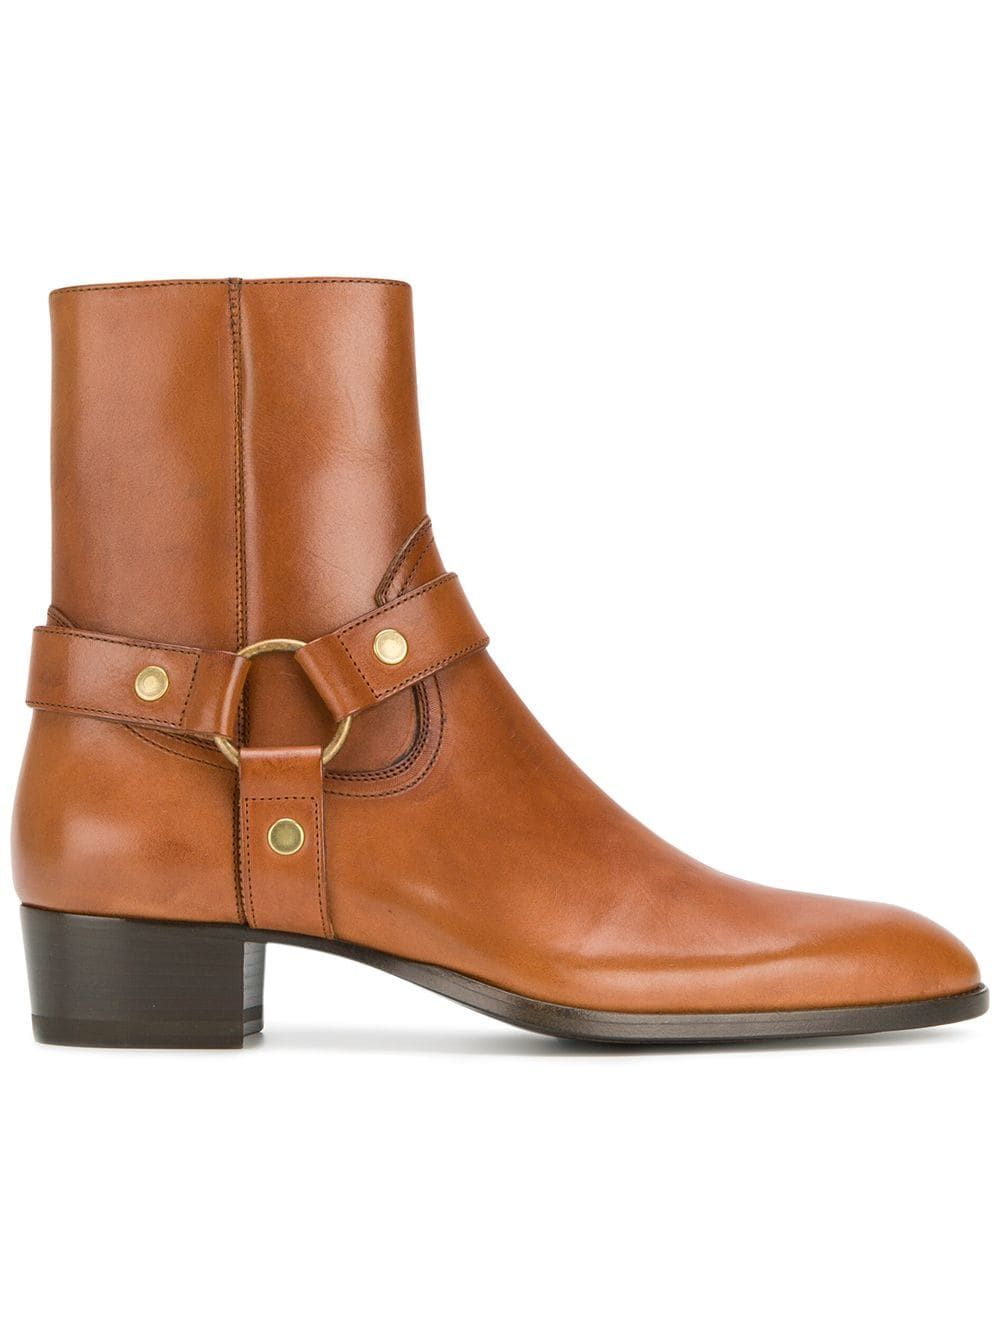 721906dd66 Saint Laurent Classic Wyatt 40 Harness boots - Brown | Products in ...